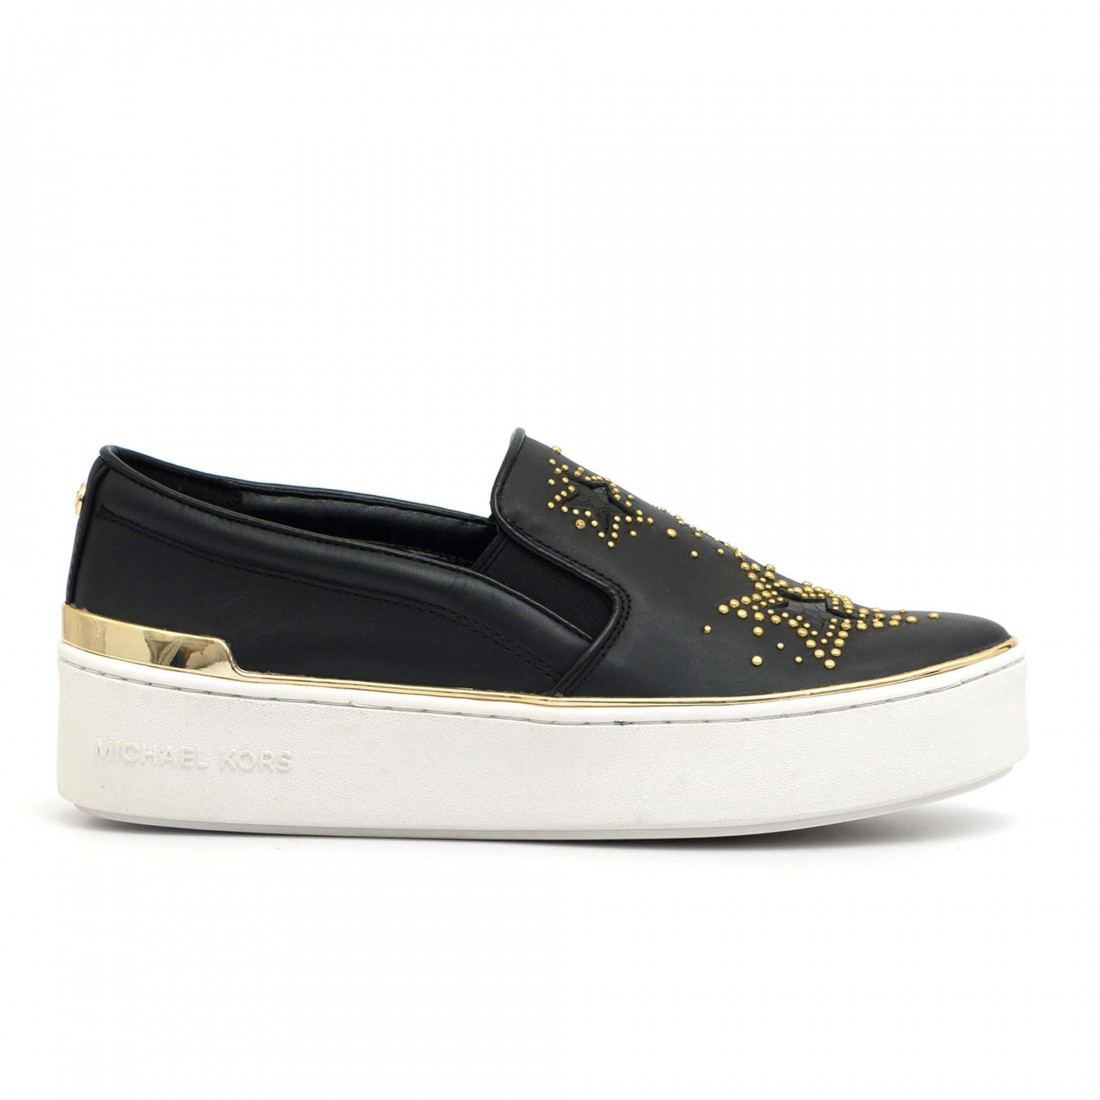 slip on woman michael kors 43r8tyfp1l001 2697